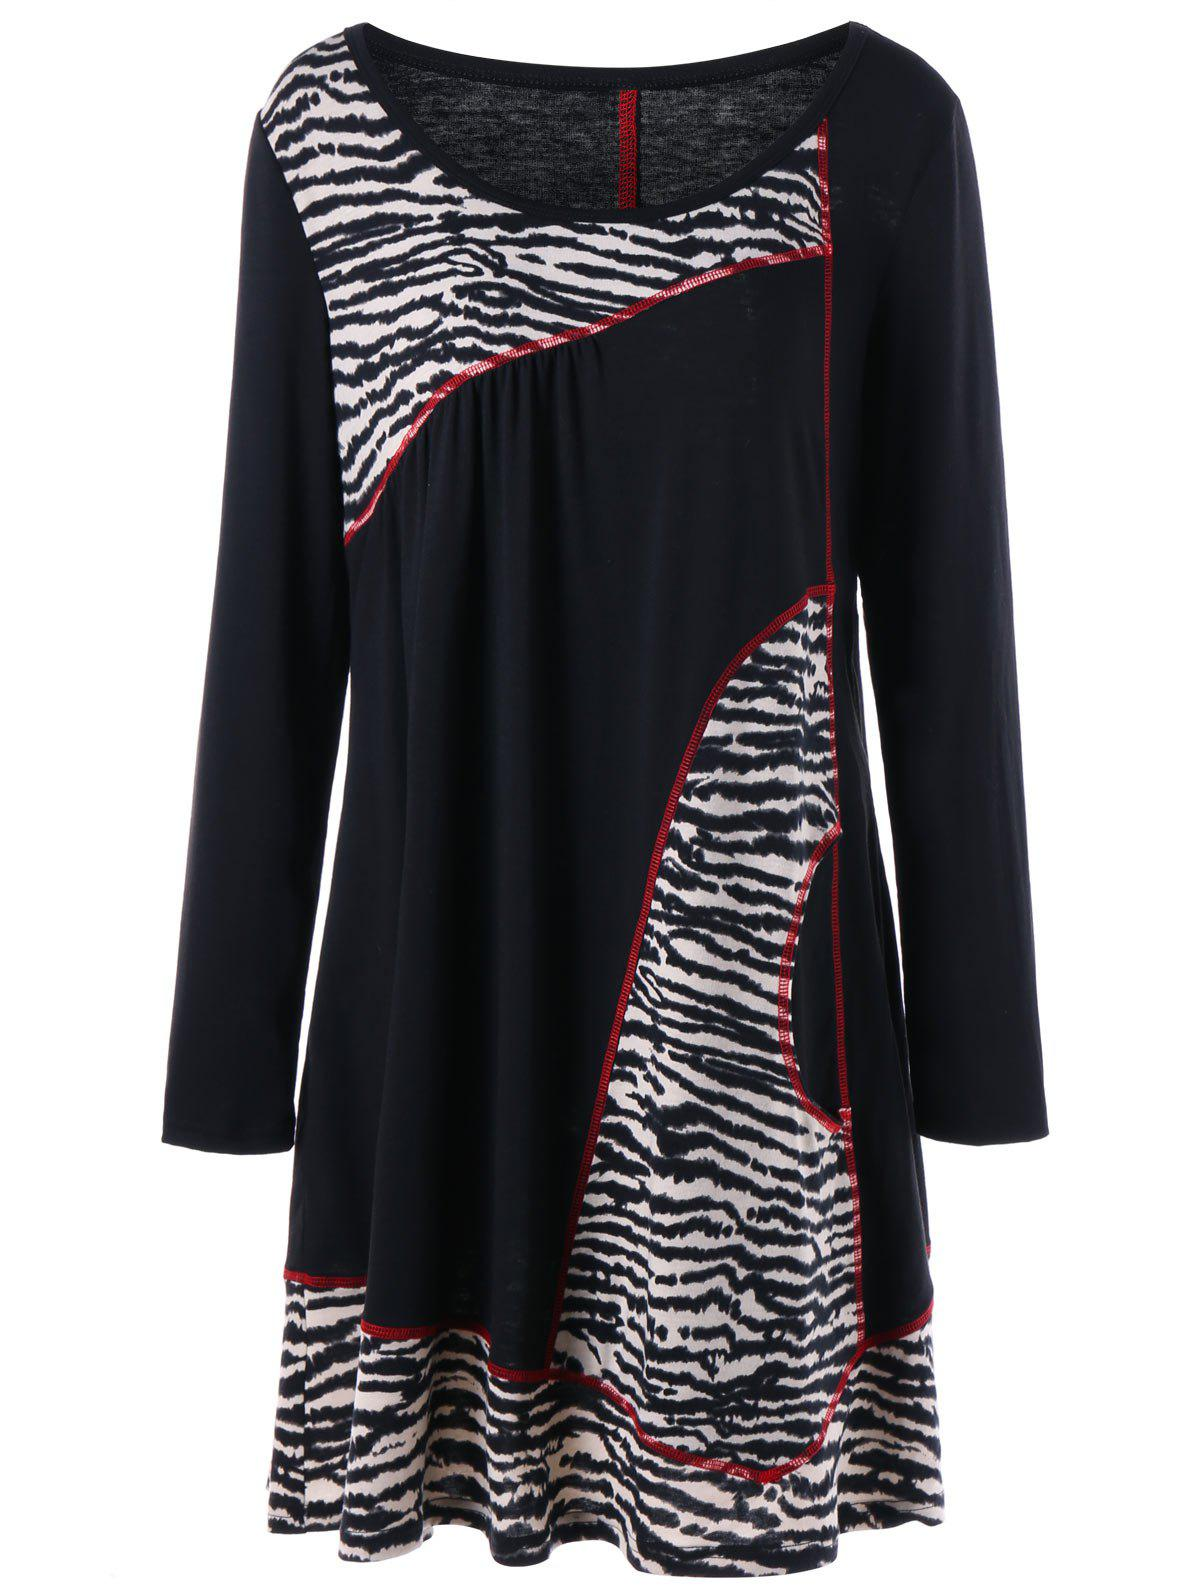 Plus Size Zebra Contrast Topstitch Longline T-shirtWOMEN<br><br>Size: 5XL; Color: BLACK; Material: Polyester,Spandex; Shirt Length: Long; Sleeve Length: Full; Collar: Scoop Neck; Style: Casual; Season: Fall,Spring; Pattern Type: Others; Weight: 0.3700kg; Package Contents: 1 x T-shirt;